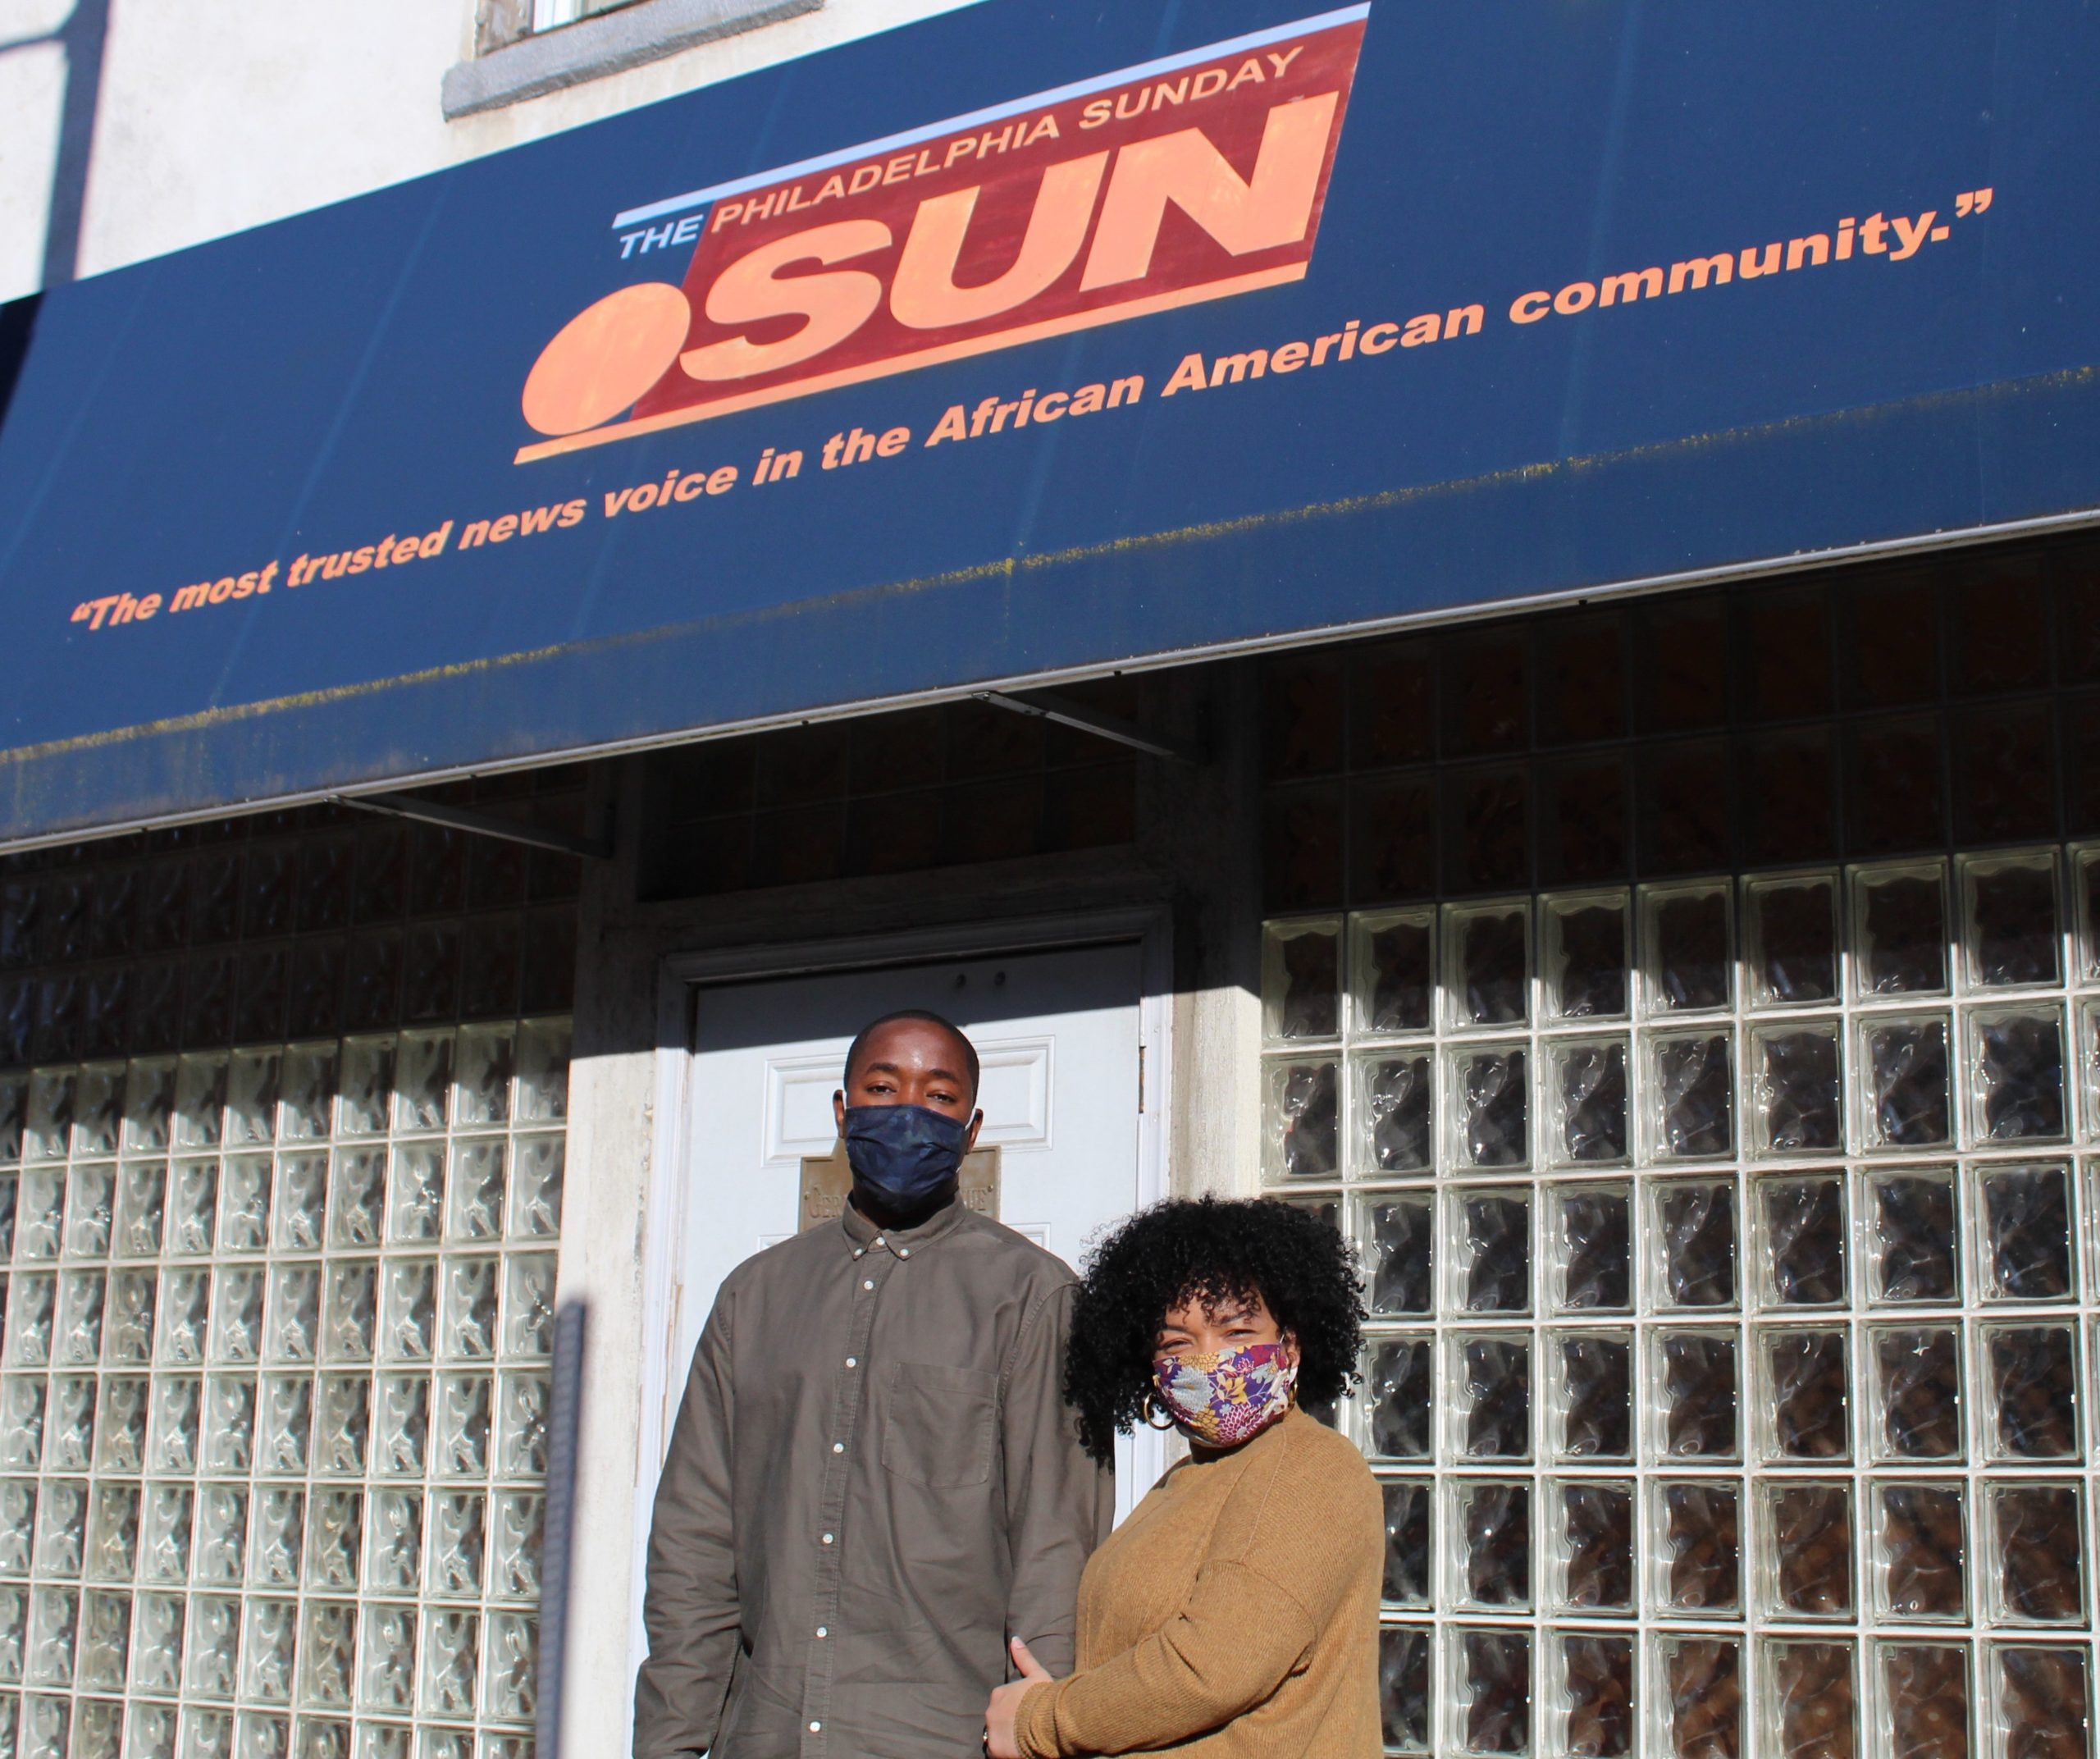 "Mt. Airy Couple Seeks to Create Community Space ""For Us, By Us"" in Philadelphia Sun Building"